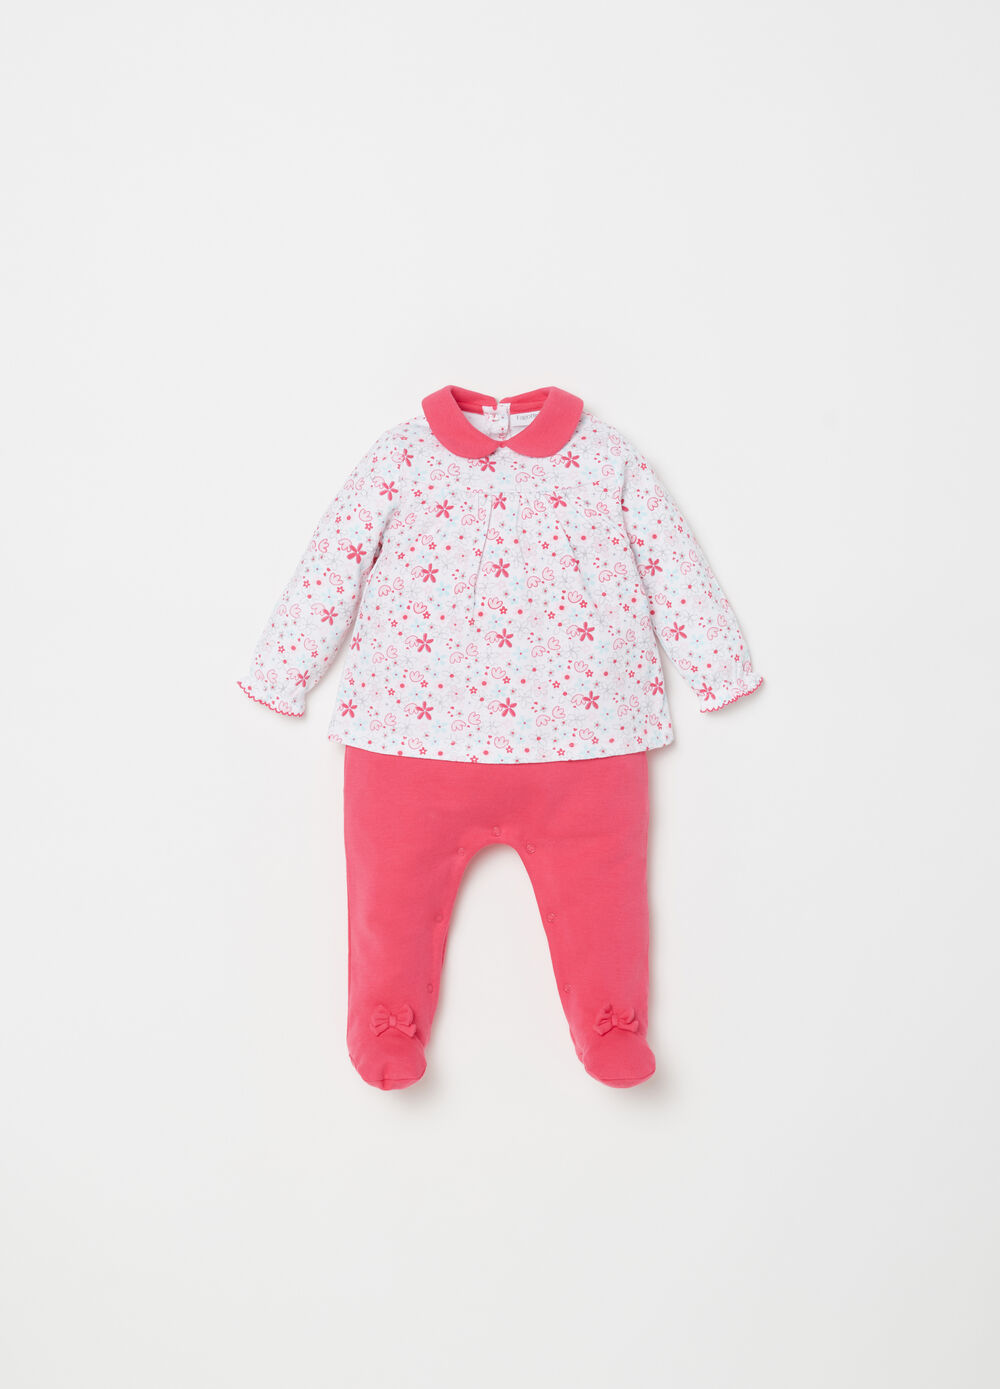 Onesie with feet, pattern and bow